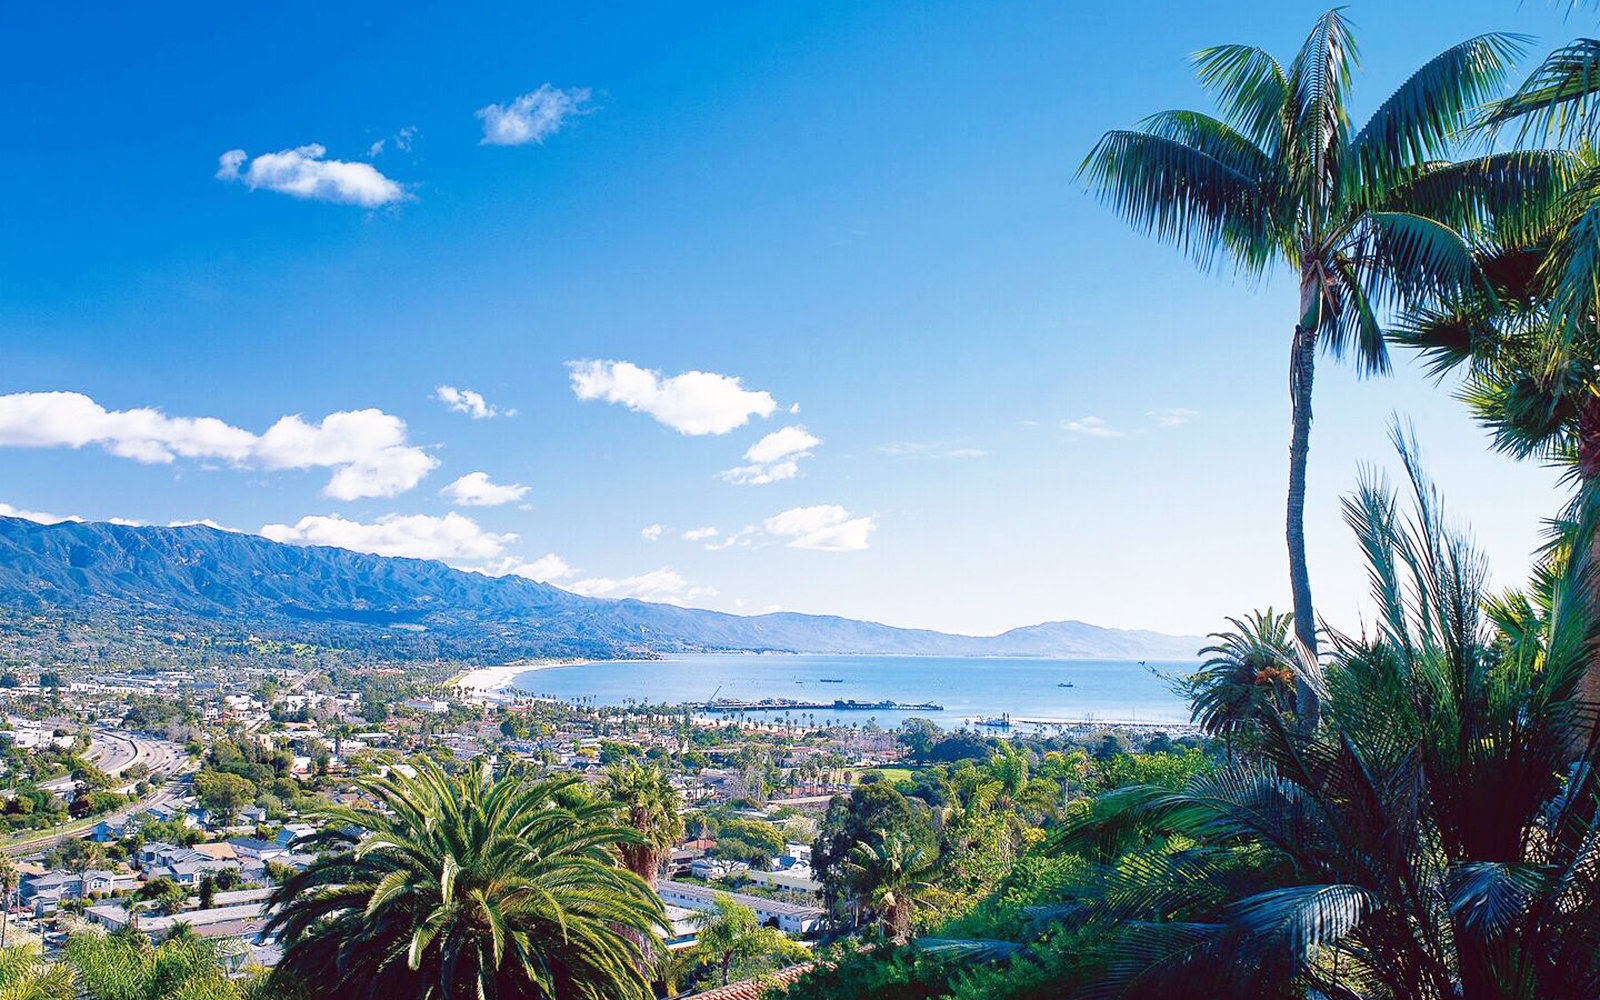 The Ultimate Guide for Traveling Santa Barbara